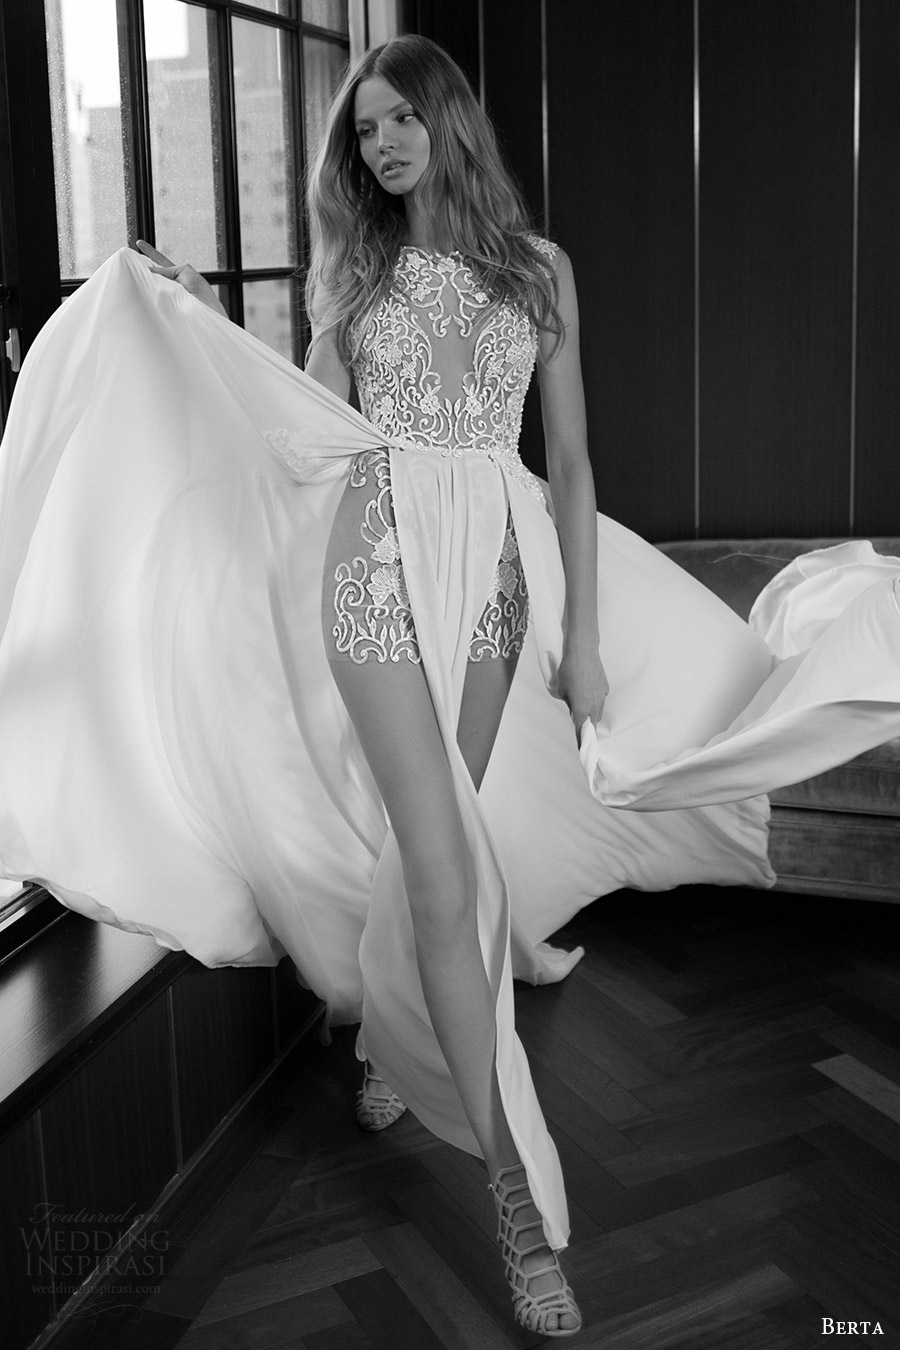 berta bridal fall 2016 sleeveless illusion jewel neck wedding dress aline double slit overskirt (16 106) mv